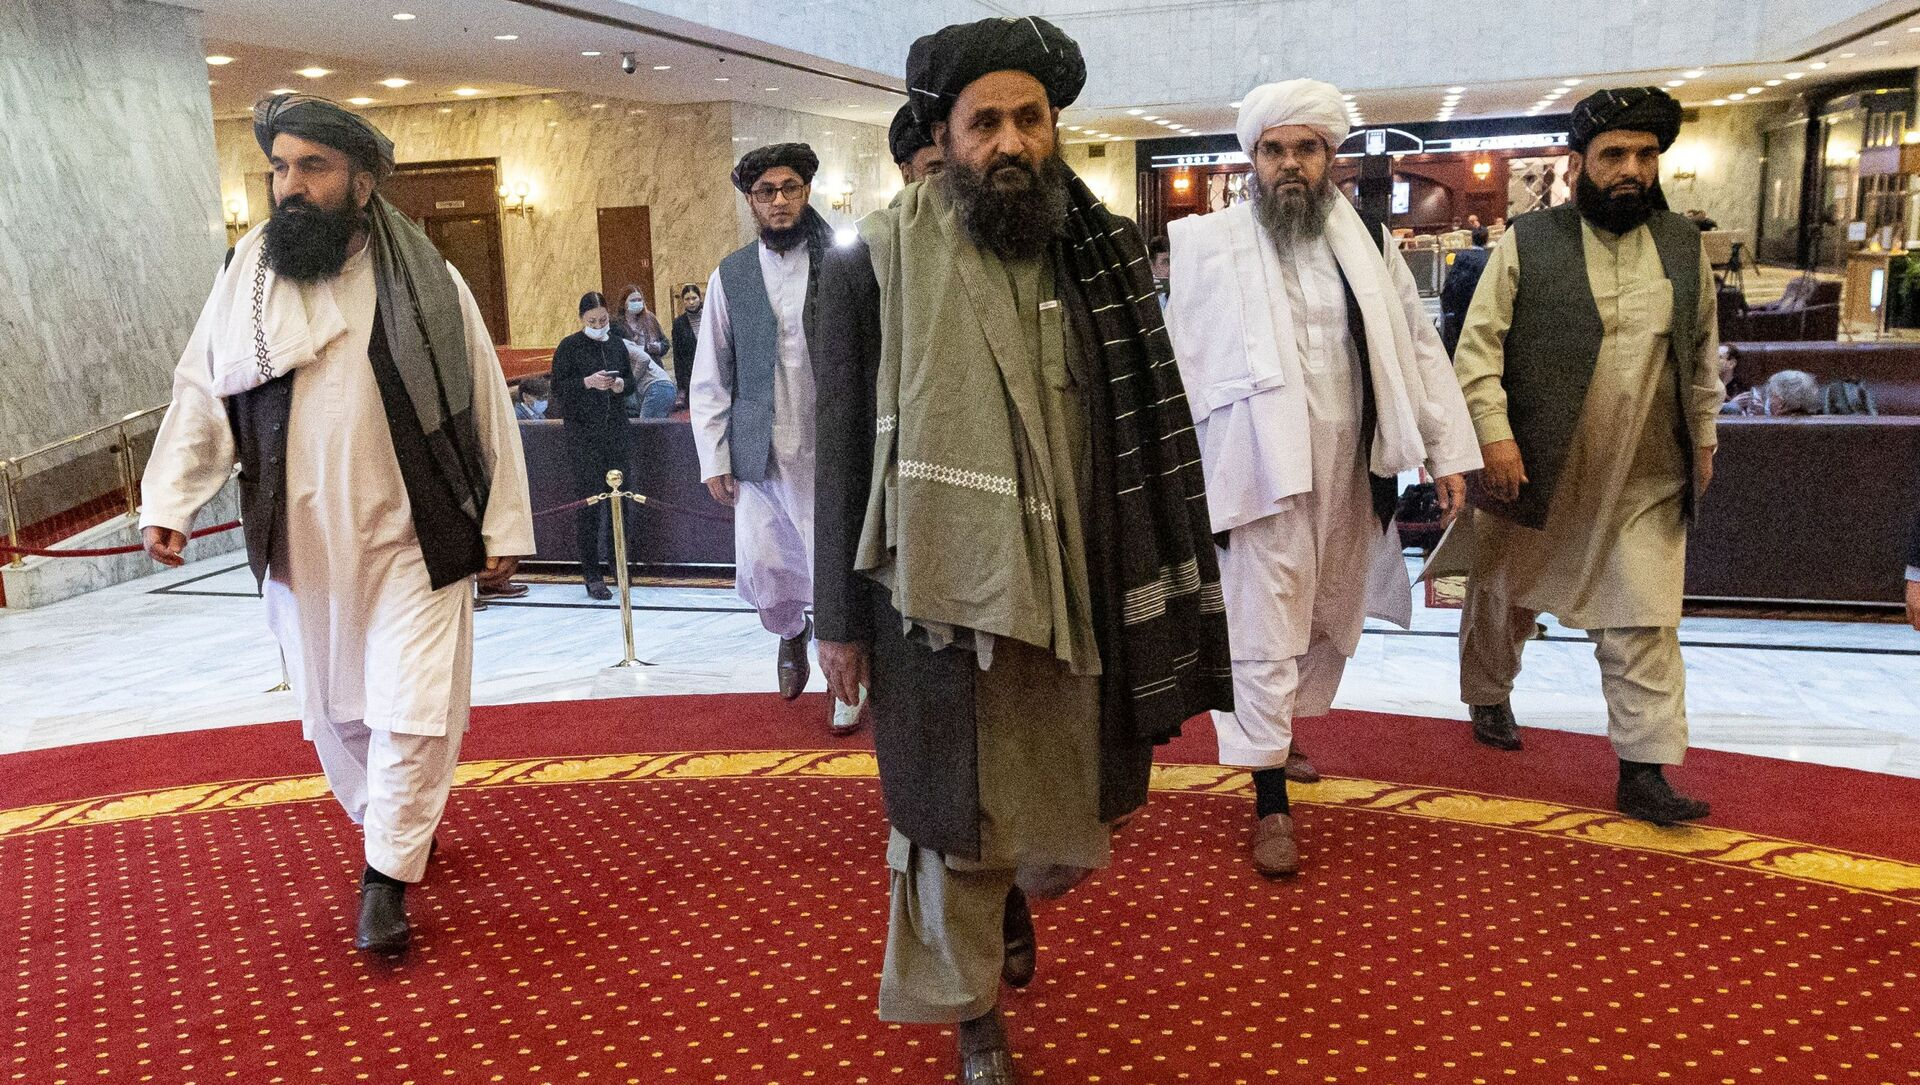 Mullah Abdul Ghani Baradar, the Taliban's deputy leader and negotiator, and other delegation members attend the Afghan peace conference in Moscow, Russia March 18, 2021. - Sputnik International, 1920, 24.08.2021